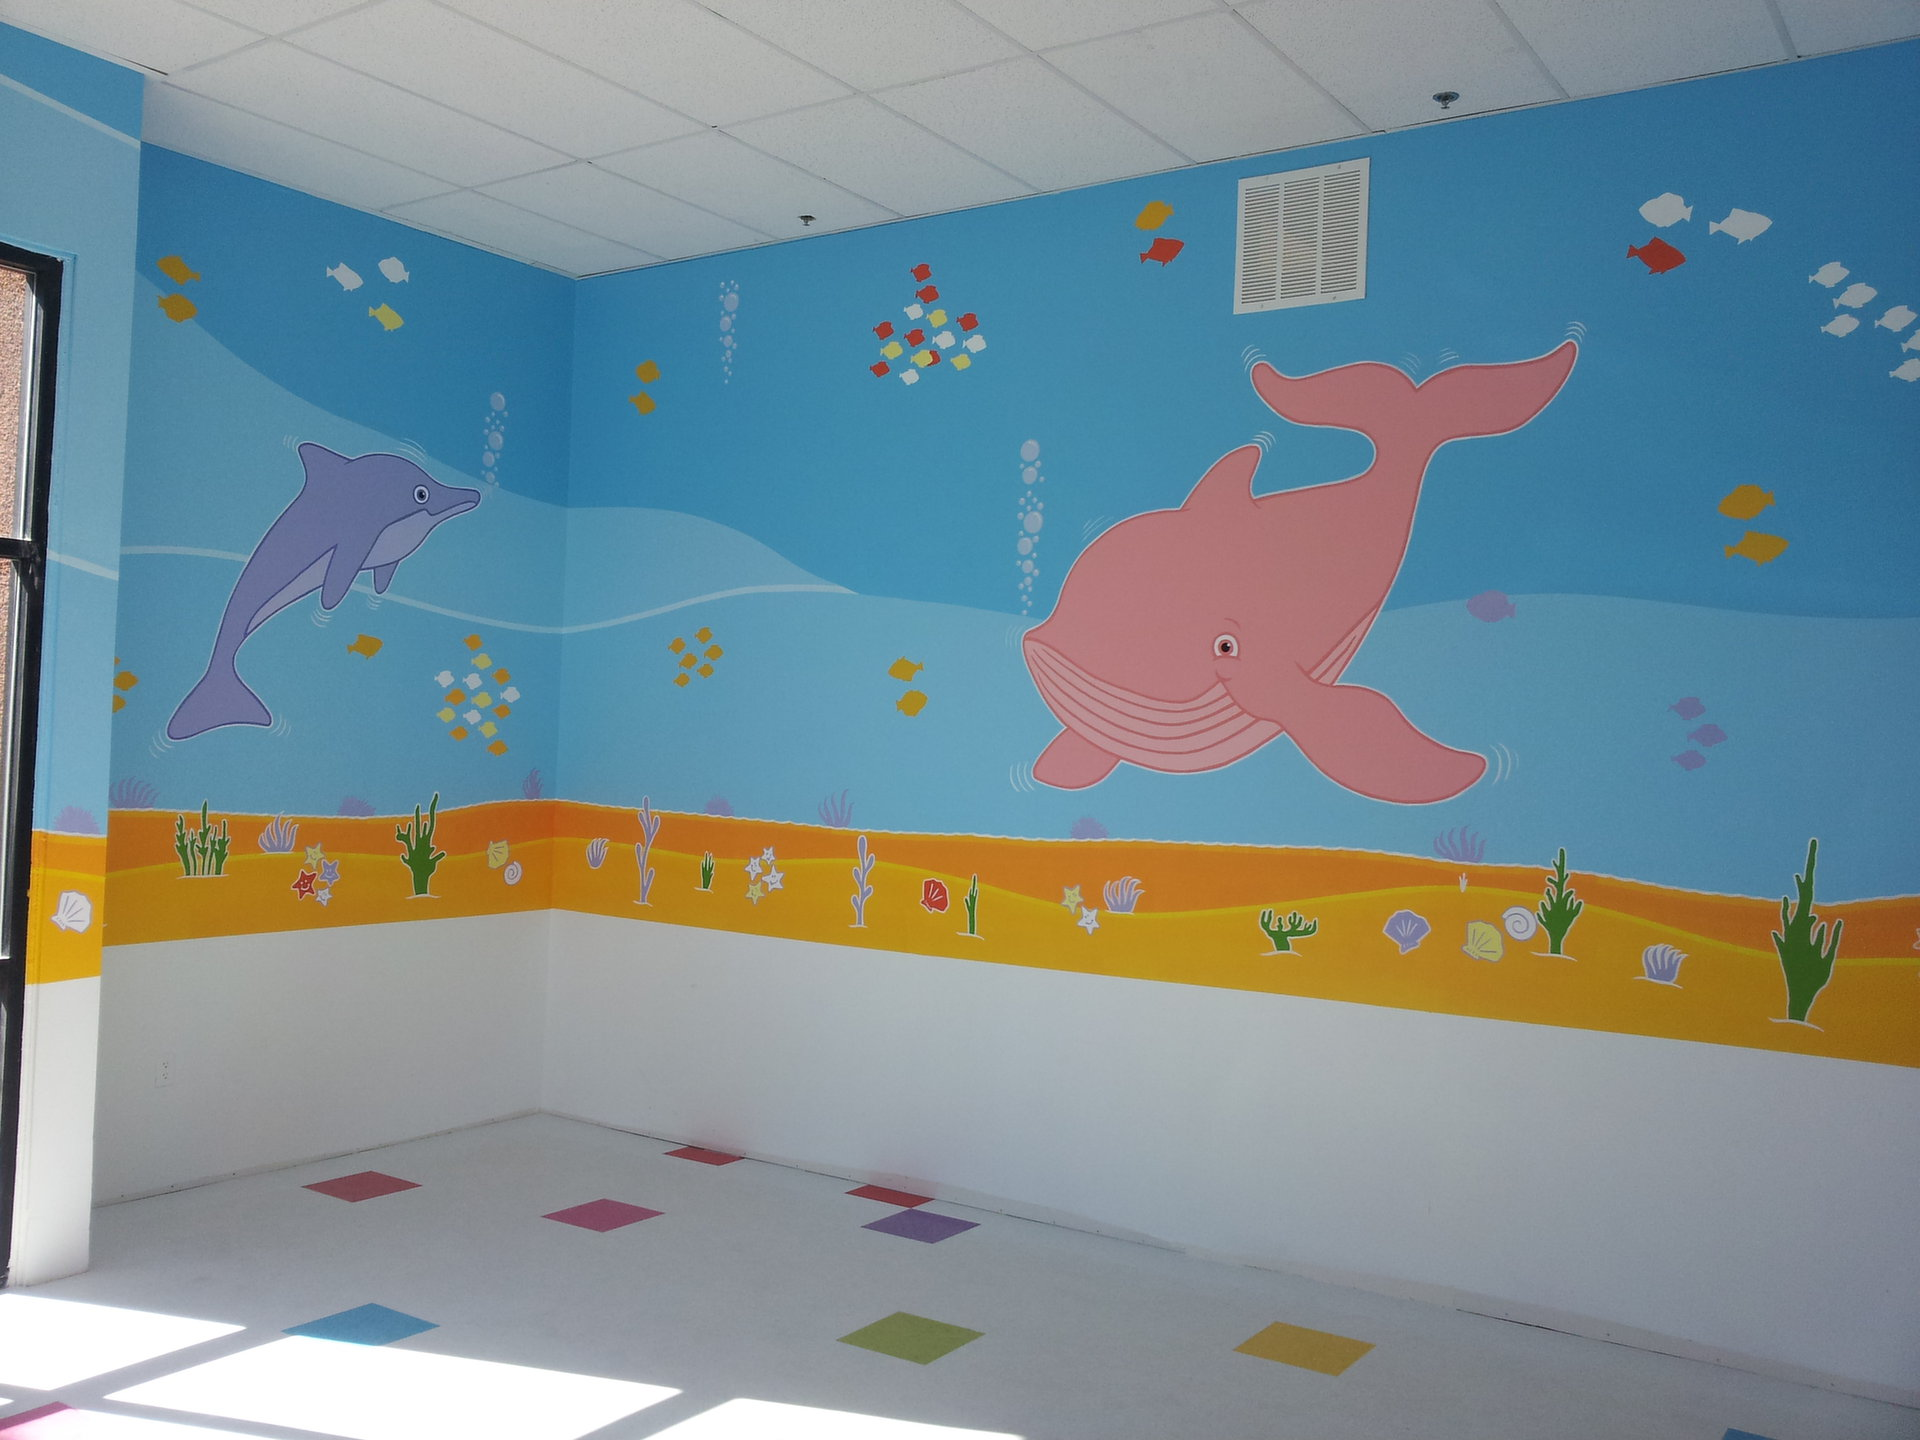 HANDPAINTED MURAL FOR KIDS CREATED BY PAUL MAXWELL GODFREY